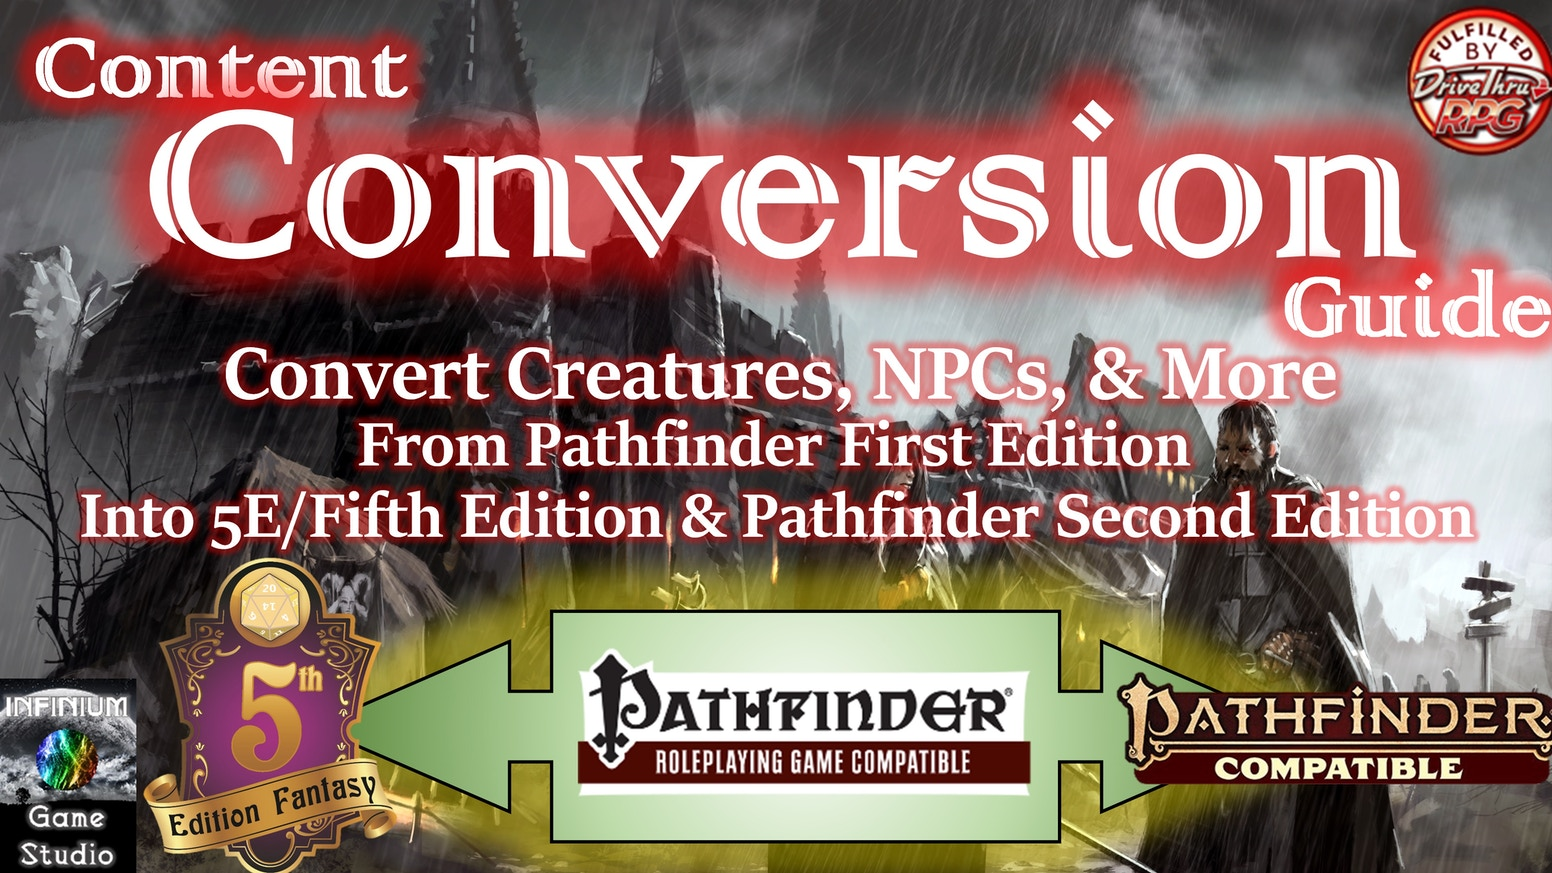 A step-by-step guide to converting monsters, NPCs, and adventure content from P1E to Fifth Edition/5E and Pathfinder Second Edition P2E